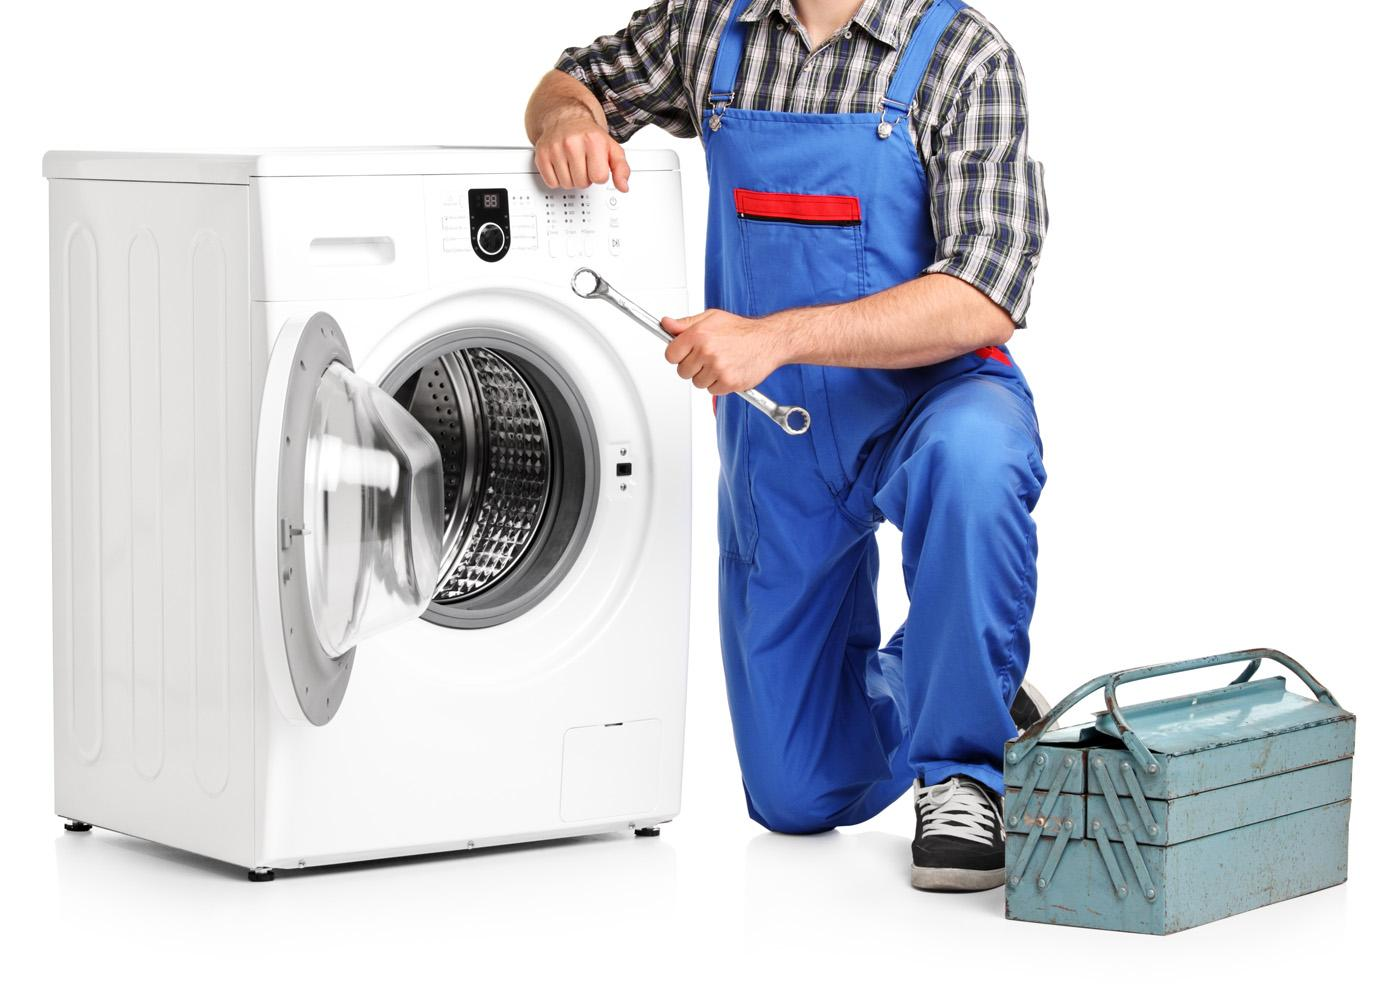 Lg Appliance Repair Near Me Bryn mawr, PA 19010